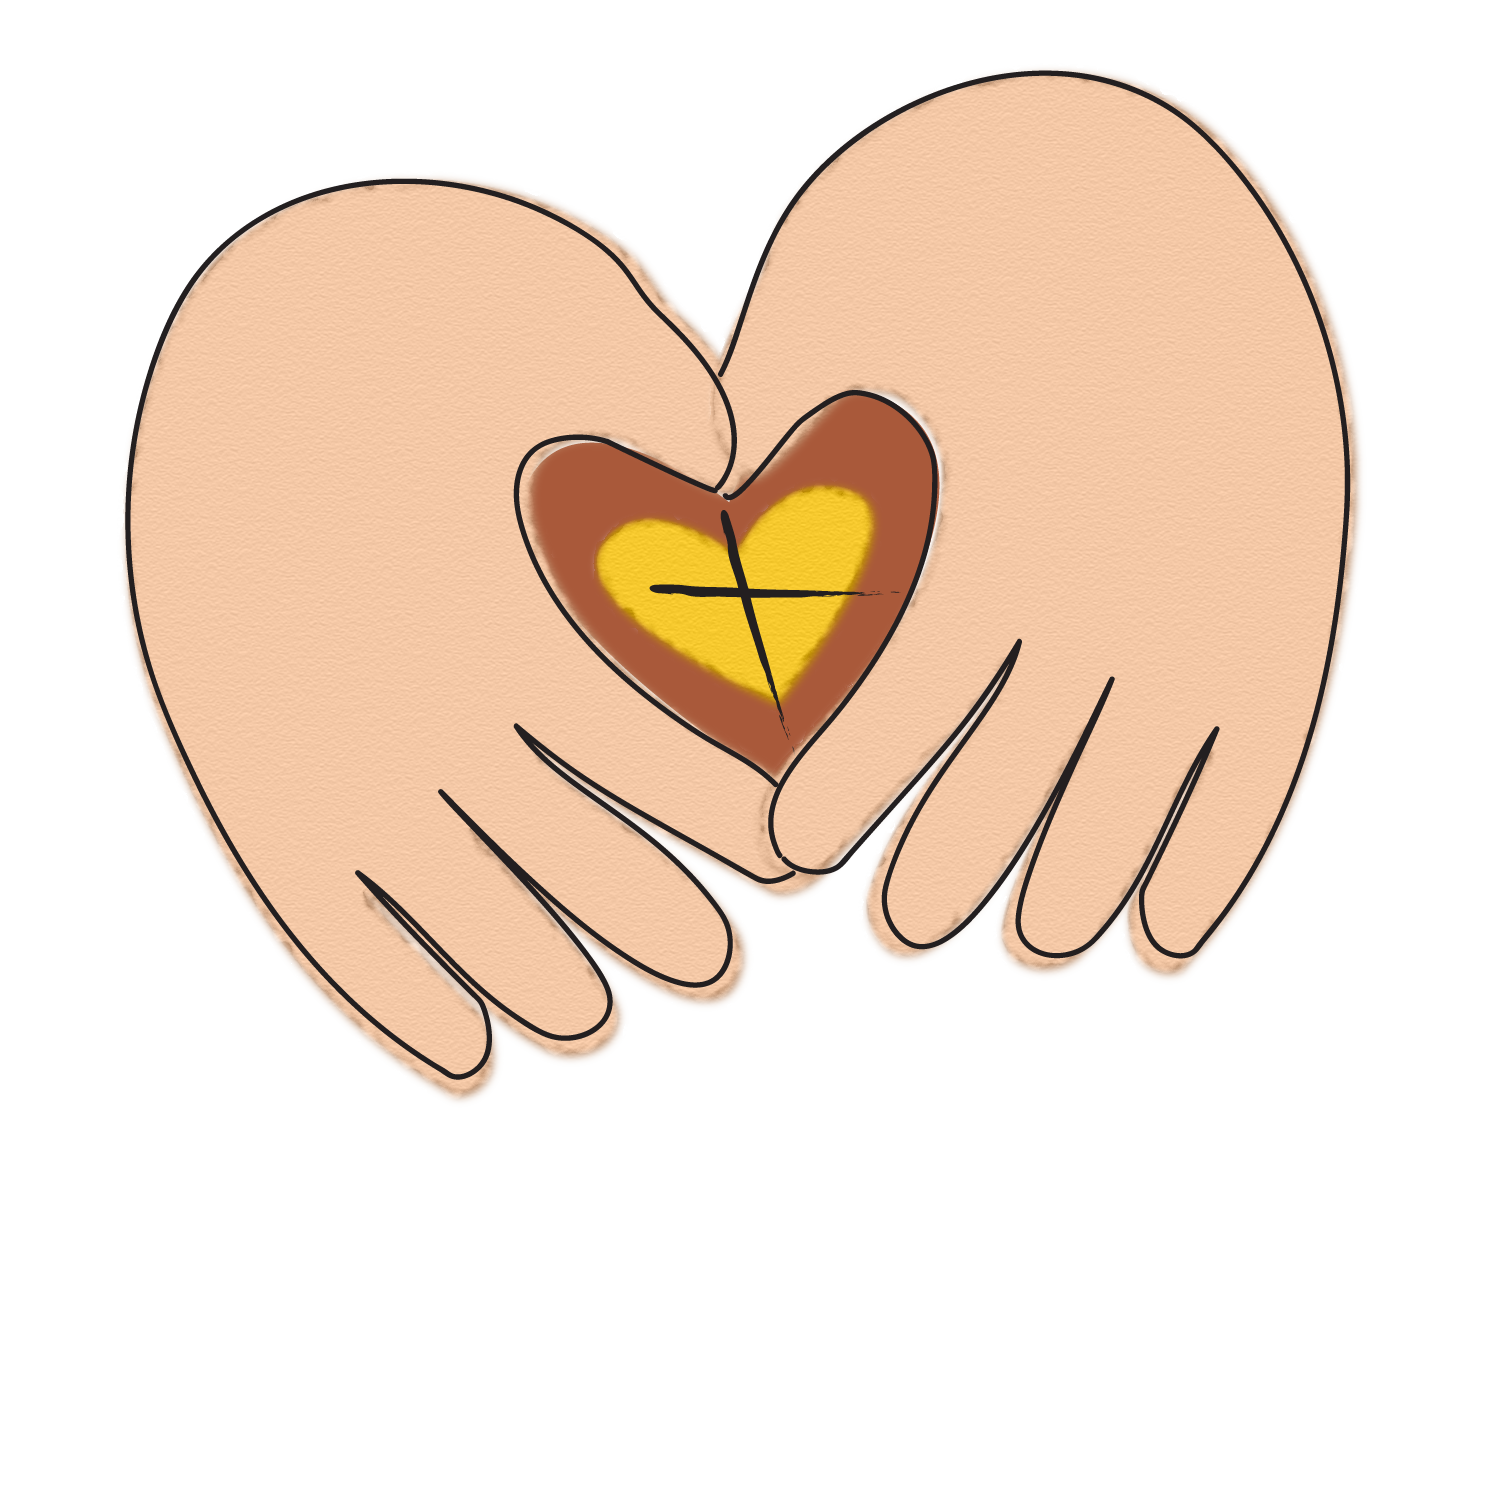 Philosophy of care gospel. Hands clipart helping hand